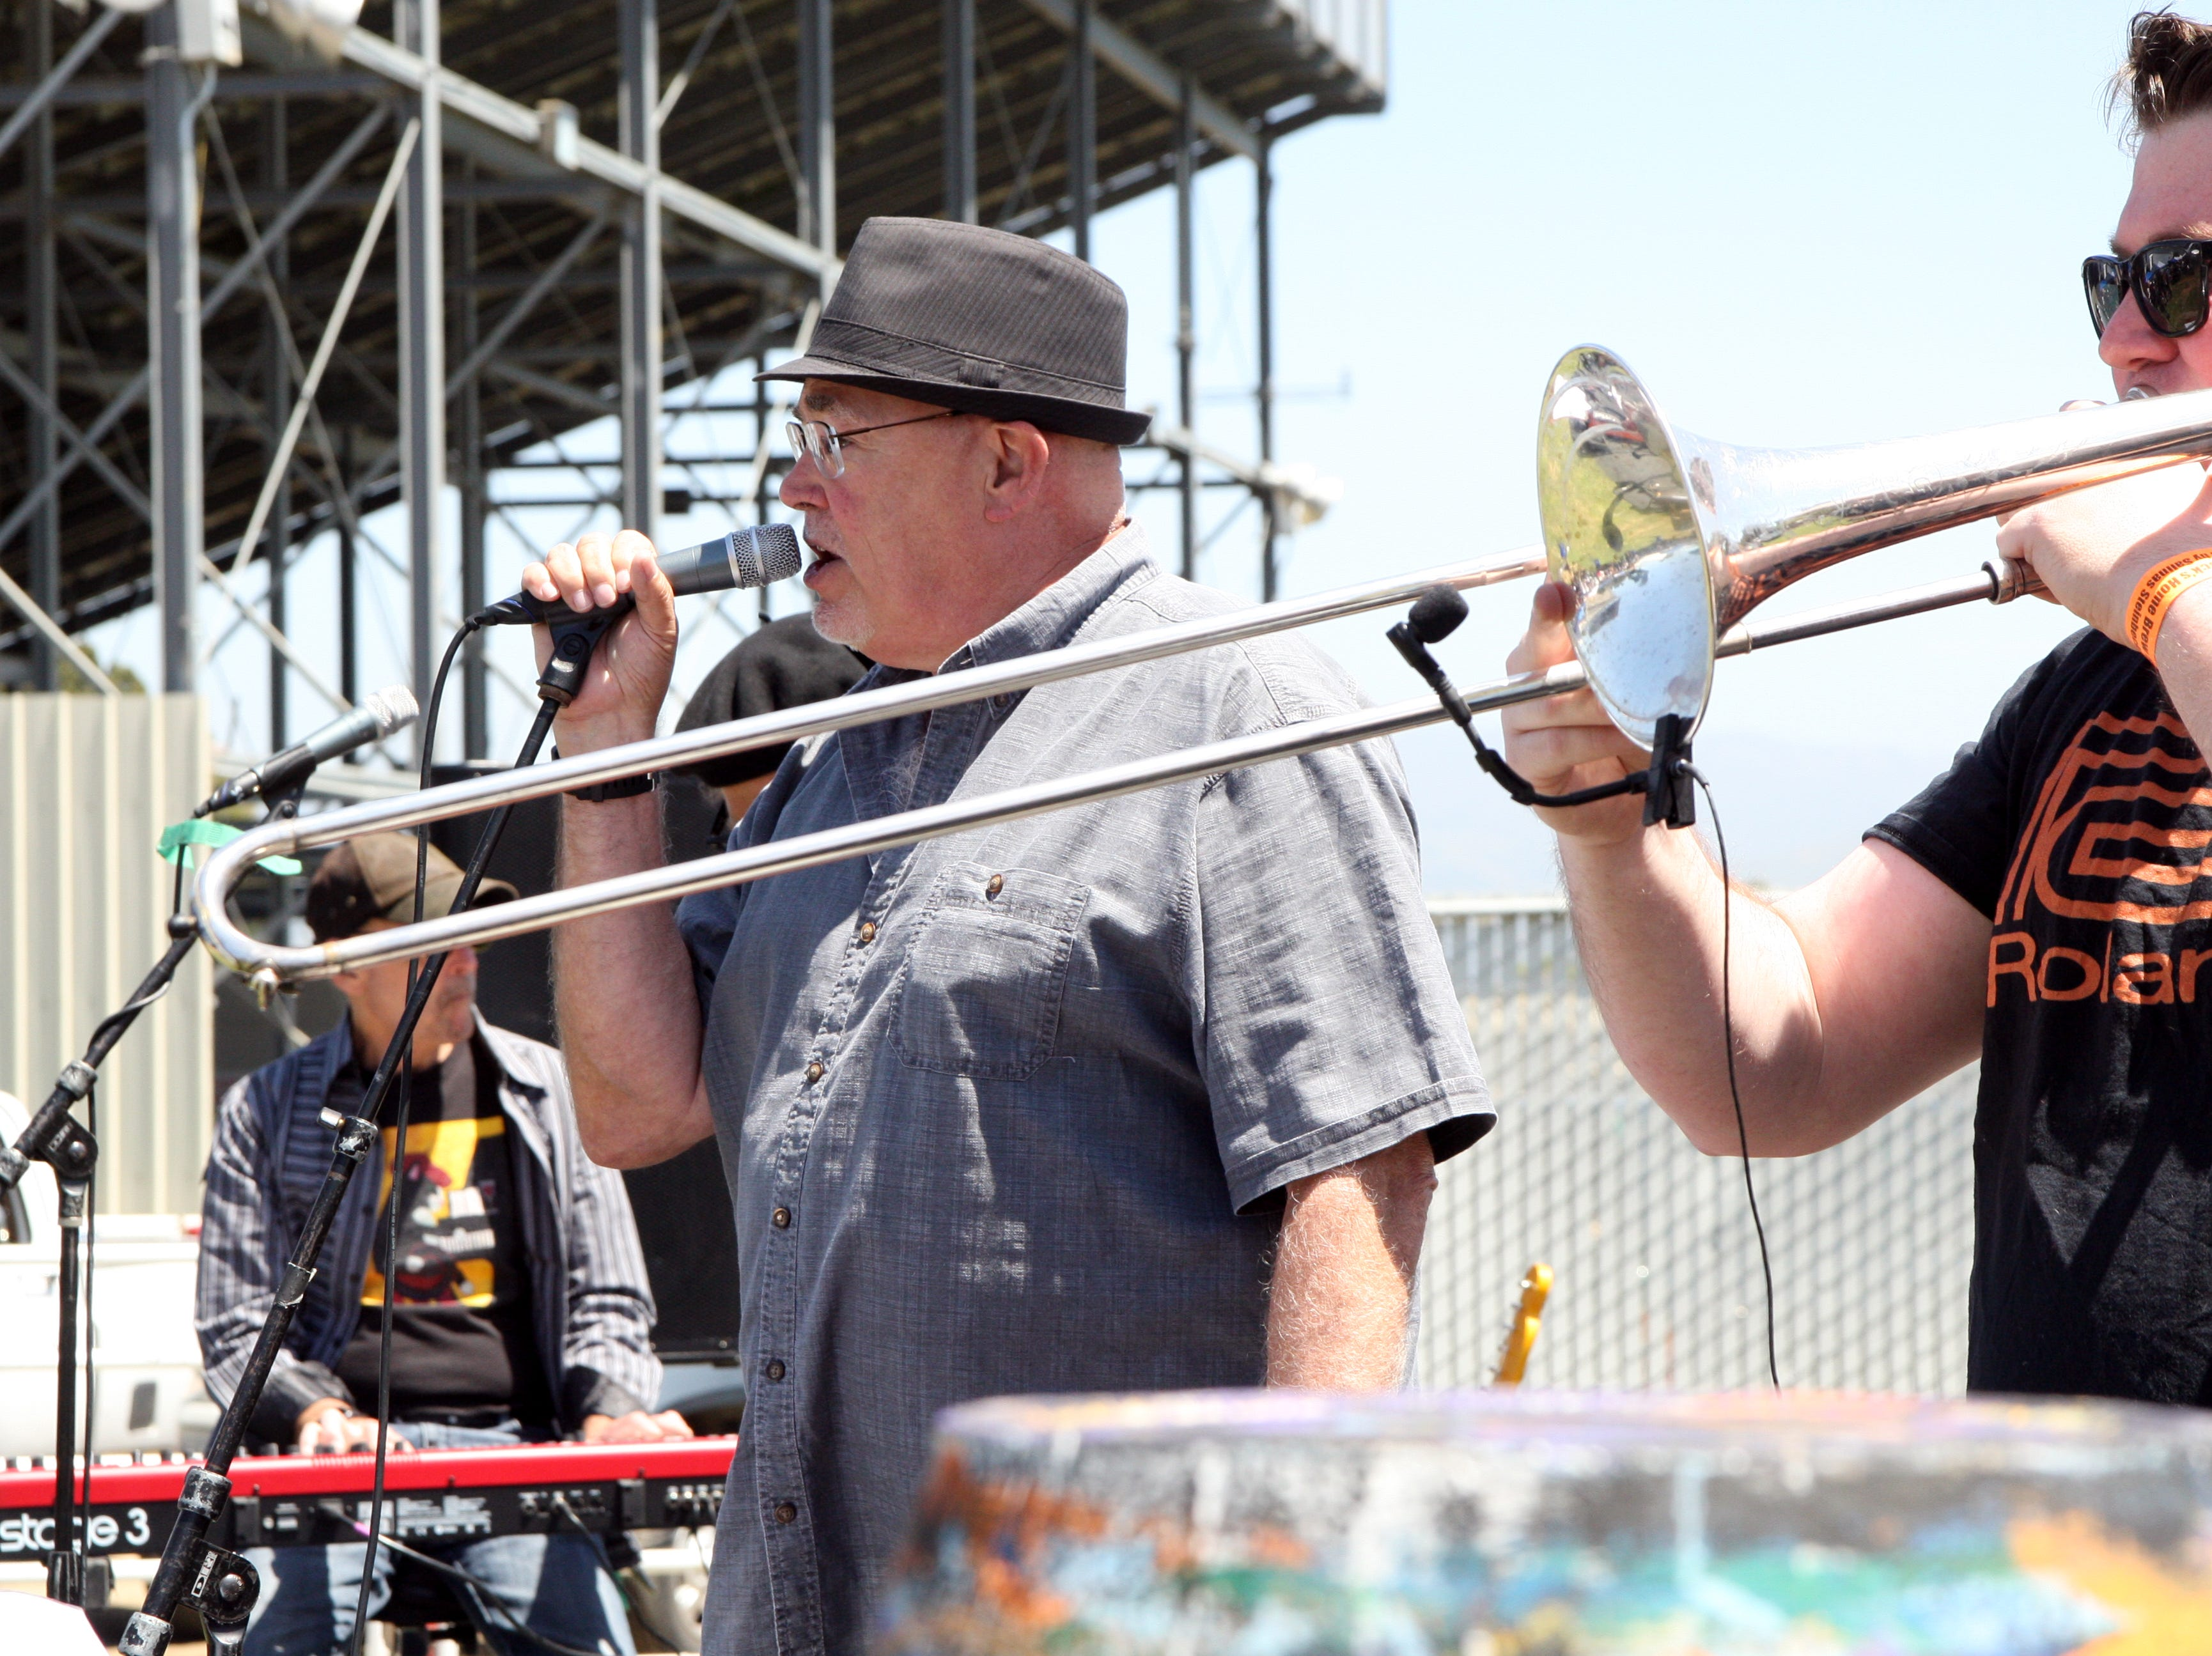 A band entertained the crowd for hours at the Brew Fest. May 4, 2019.